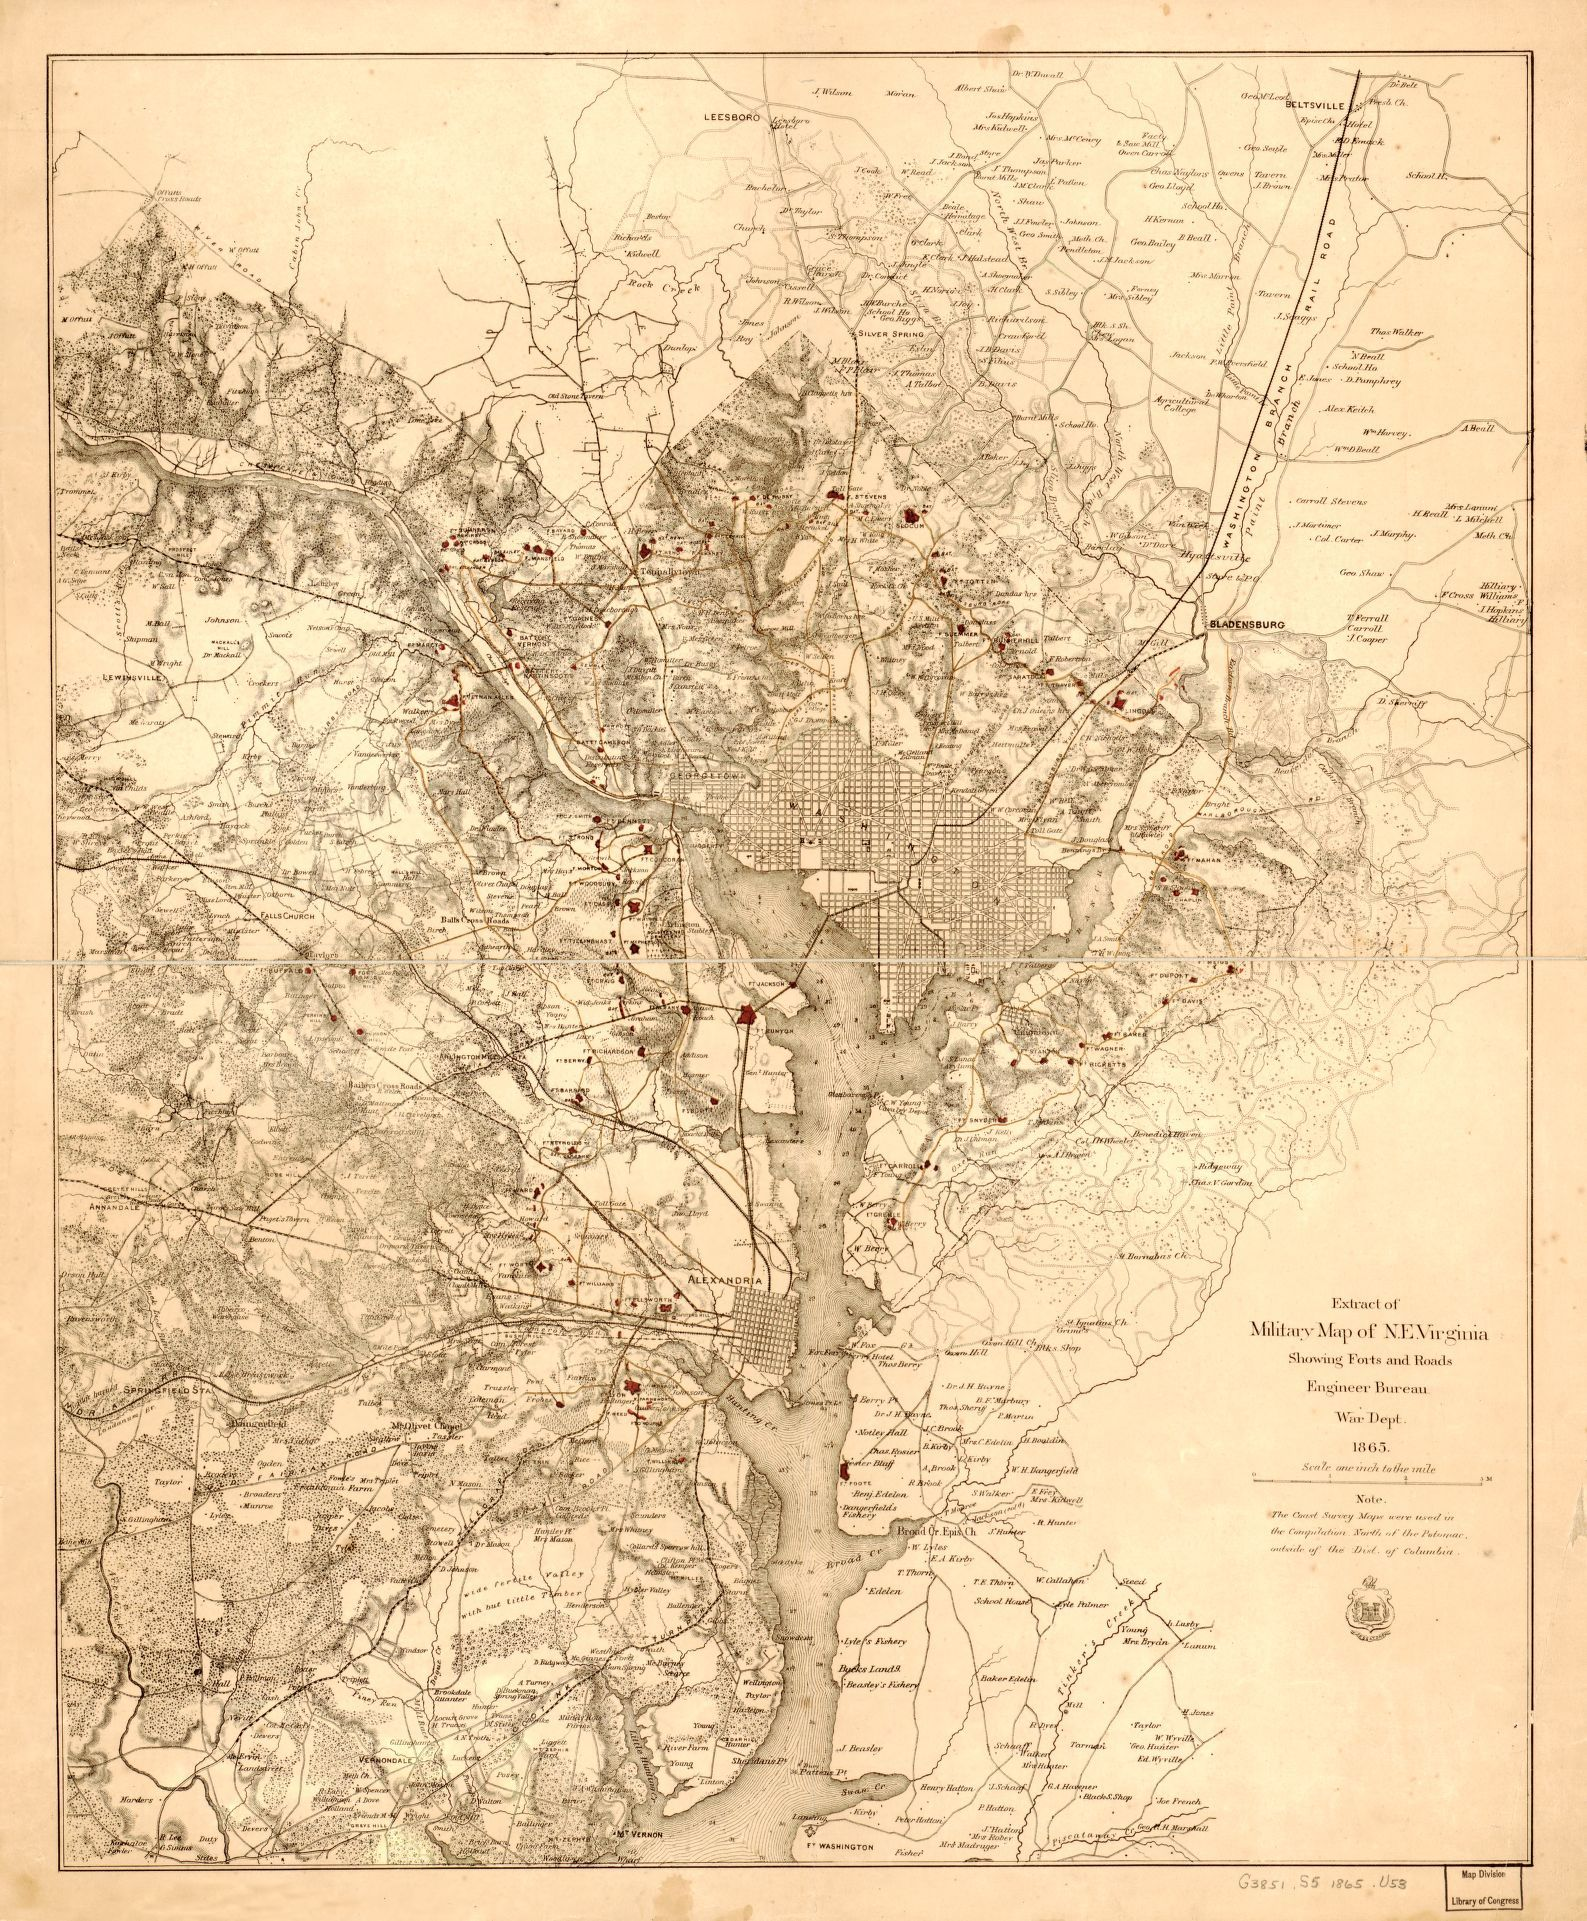 Extract of military map of NE Virginia showing forts and roads